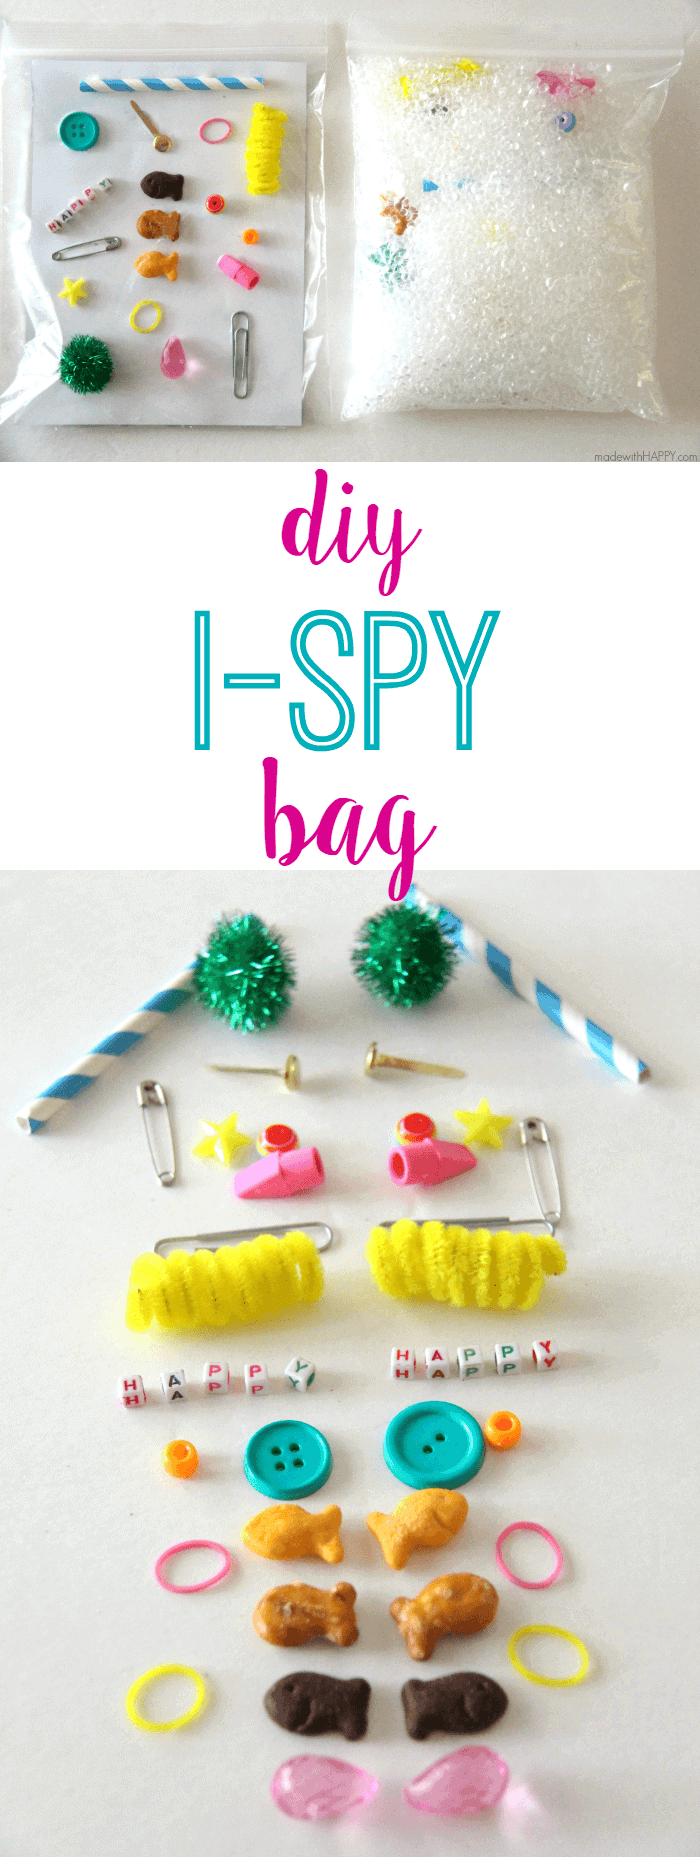 DIY I-Spy Bag | How to make an i-spy bag for your next road trip. | Fun Road trip Activities for kids | Kids Summer Activities  | www.madewithhappy.com